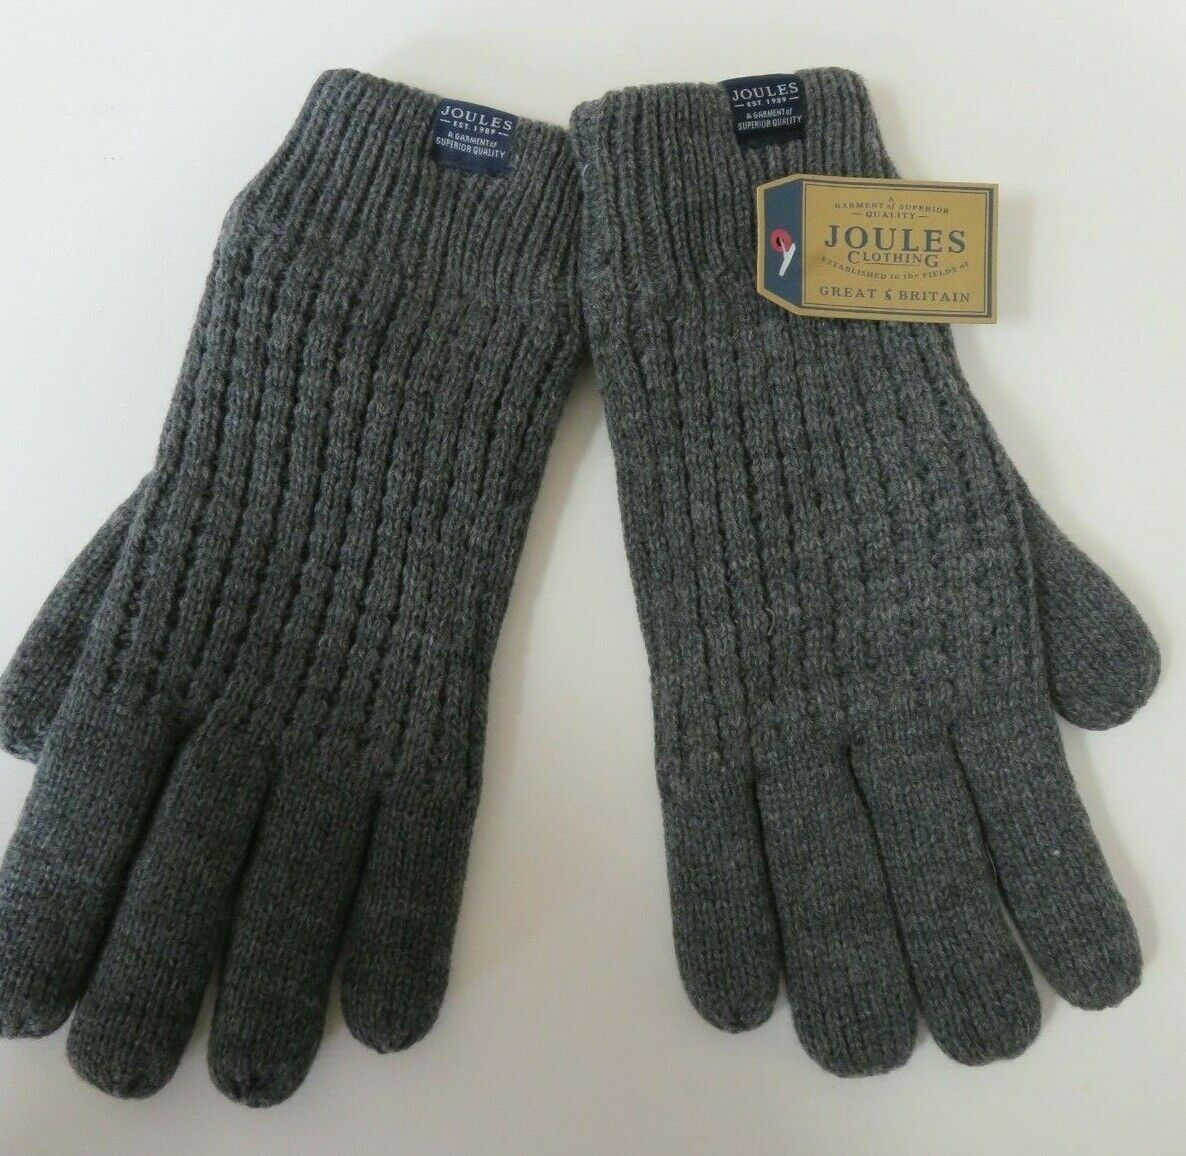 Joules mens thick gloves fleece lining charcoal grey size L/XL NEW warm winter